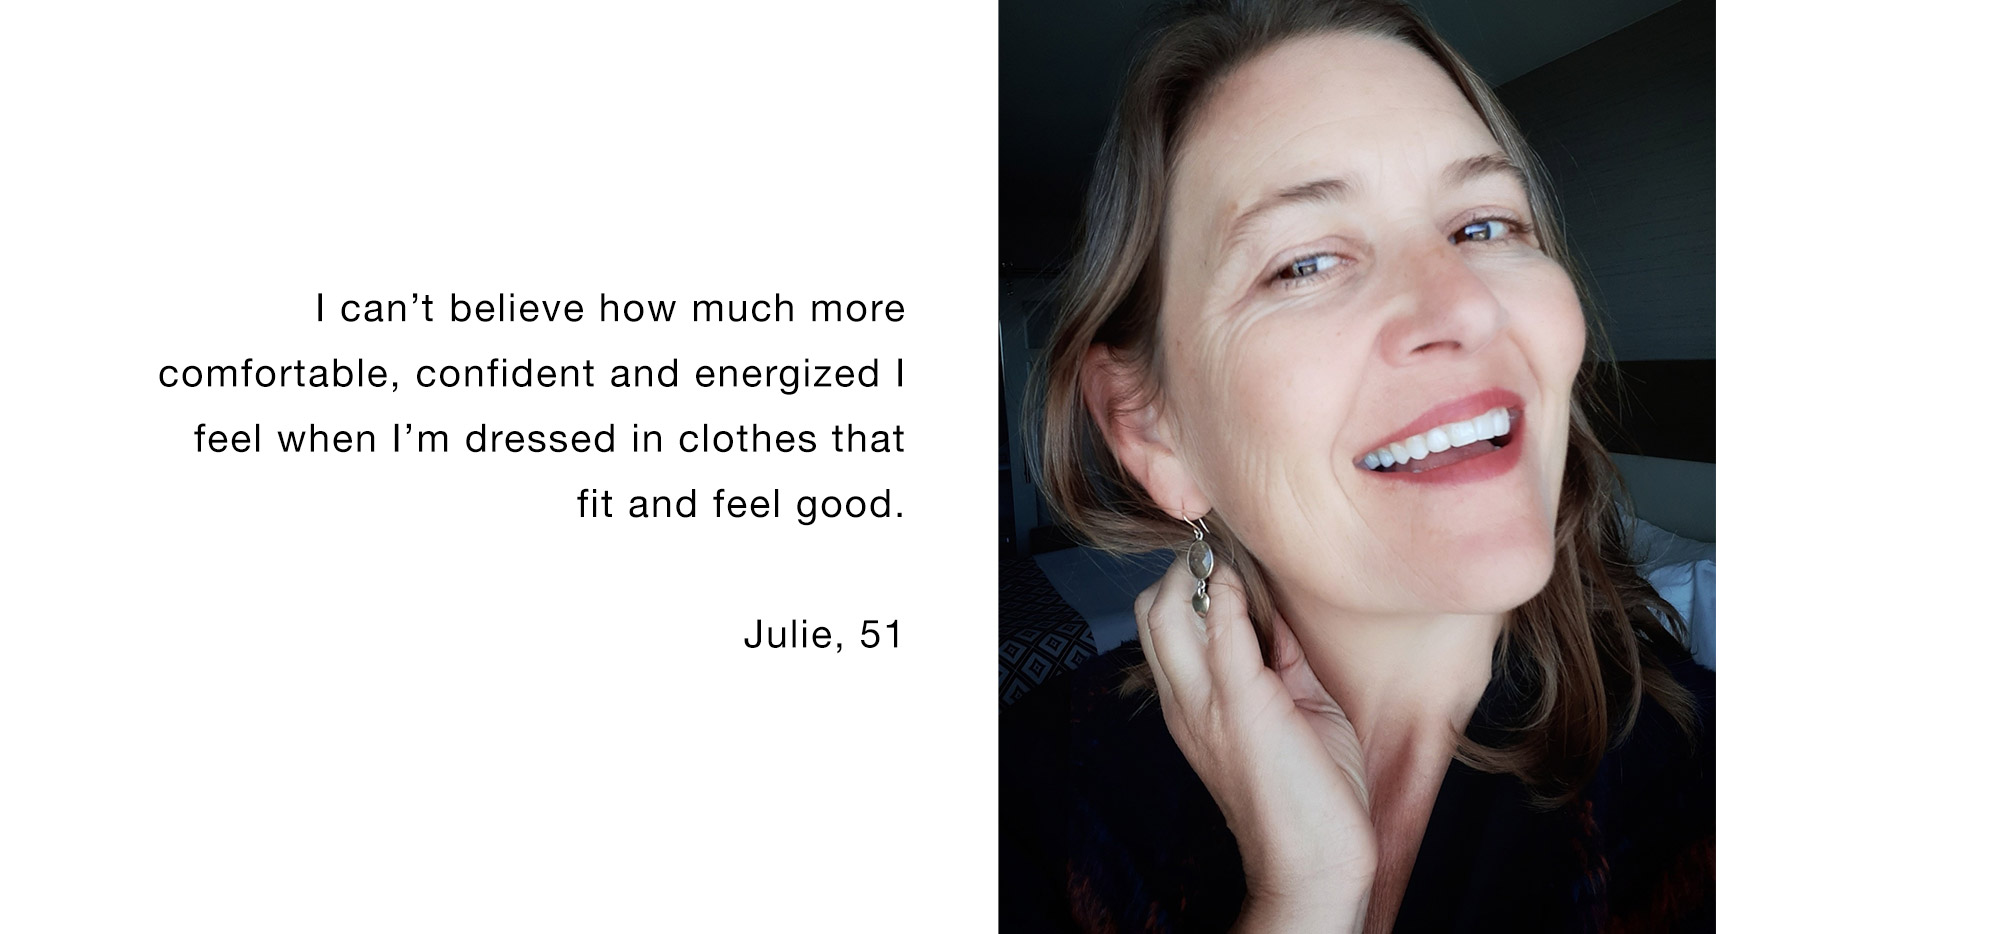 I can't believe how much more comfortable, confident and energized I feel when I'm dressed in clothes that fit and feel good. Julie, 51